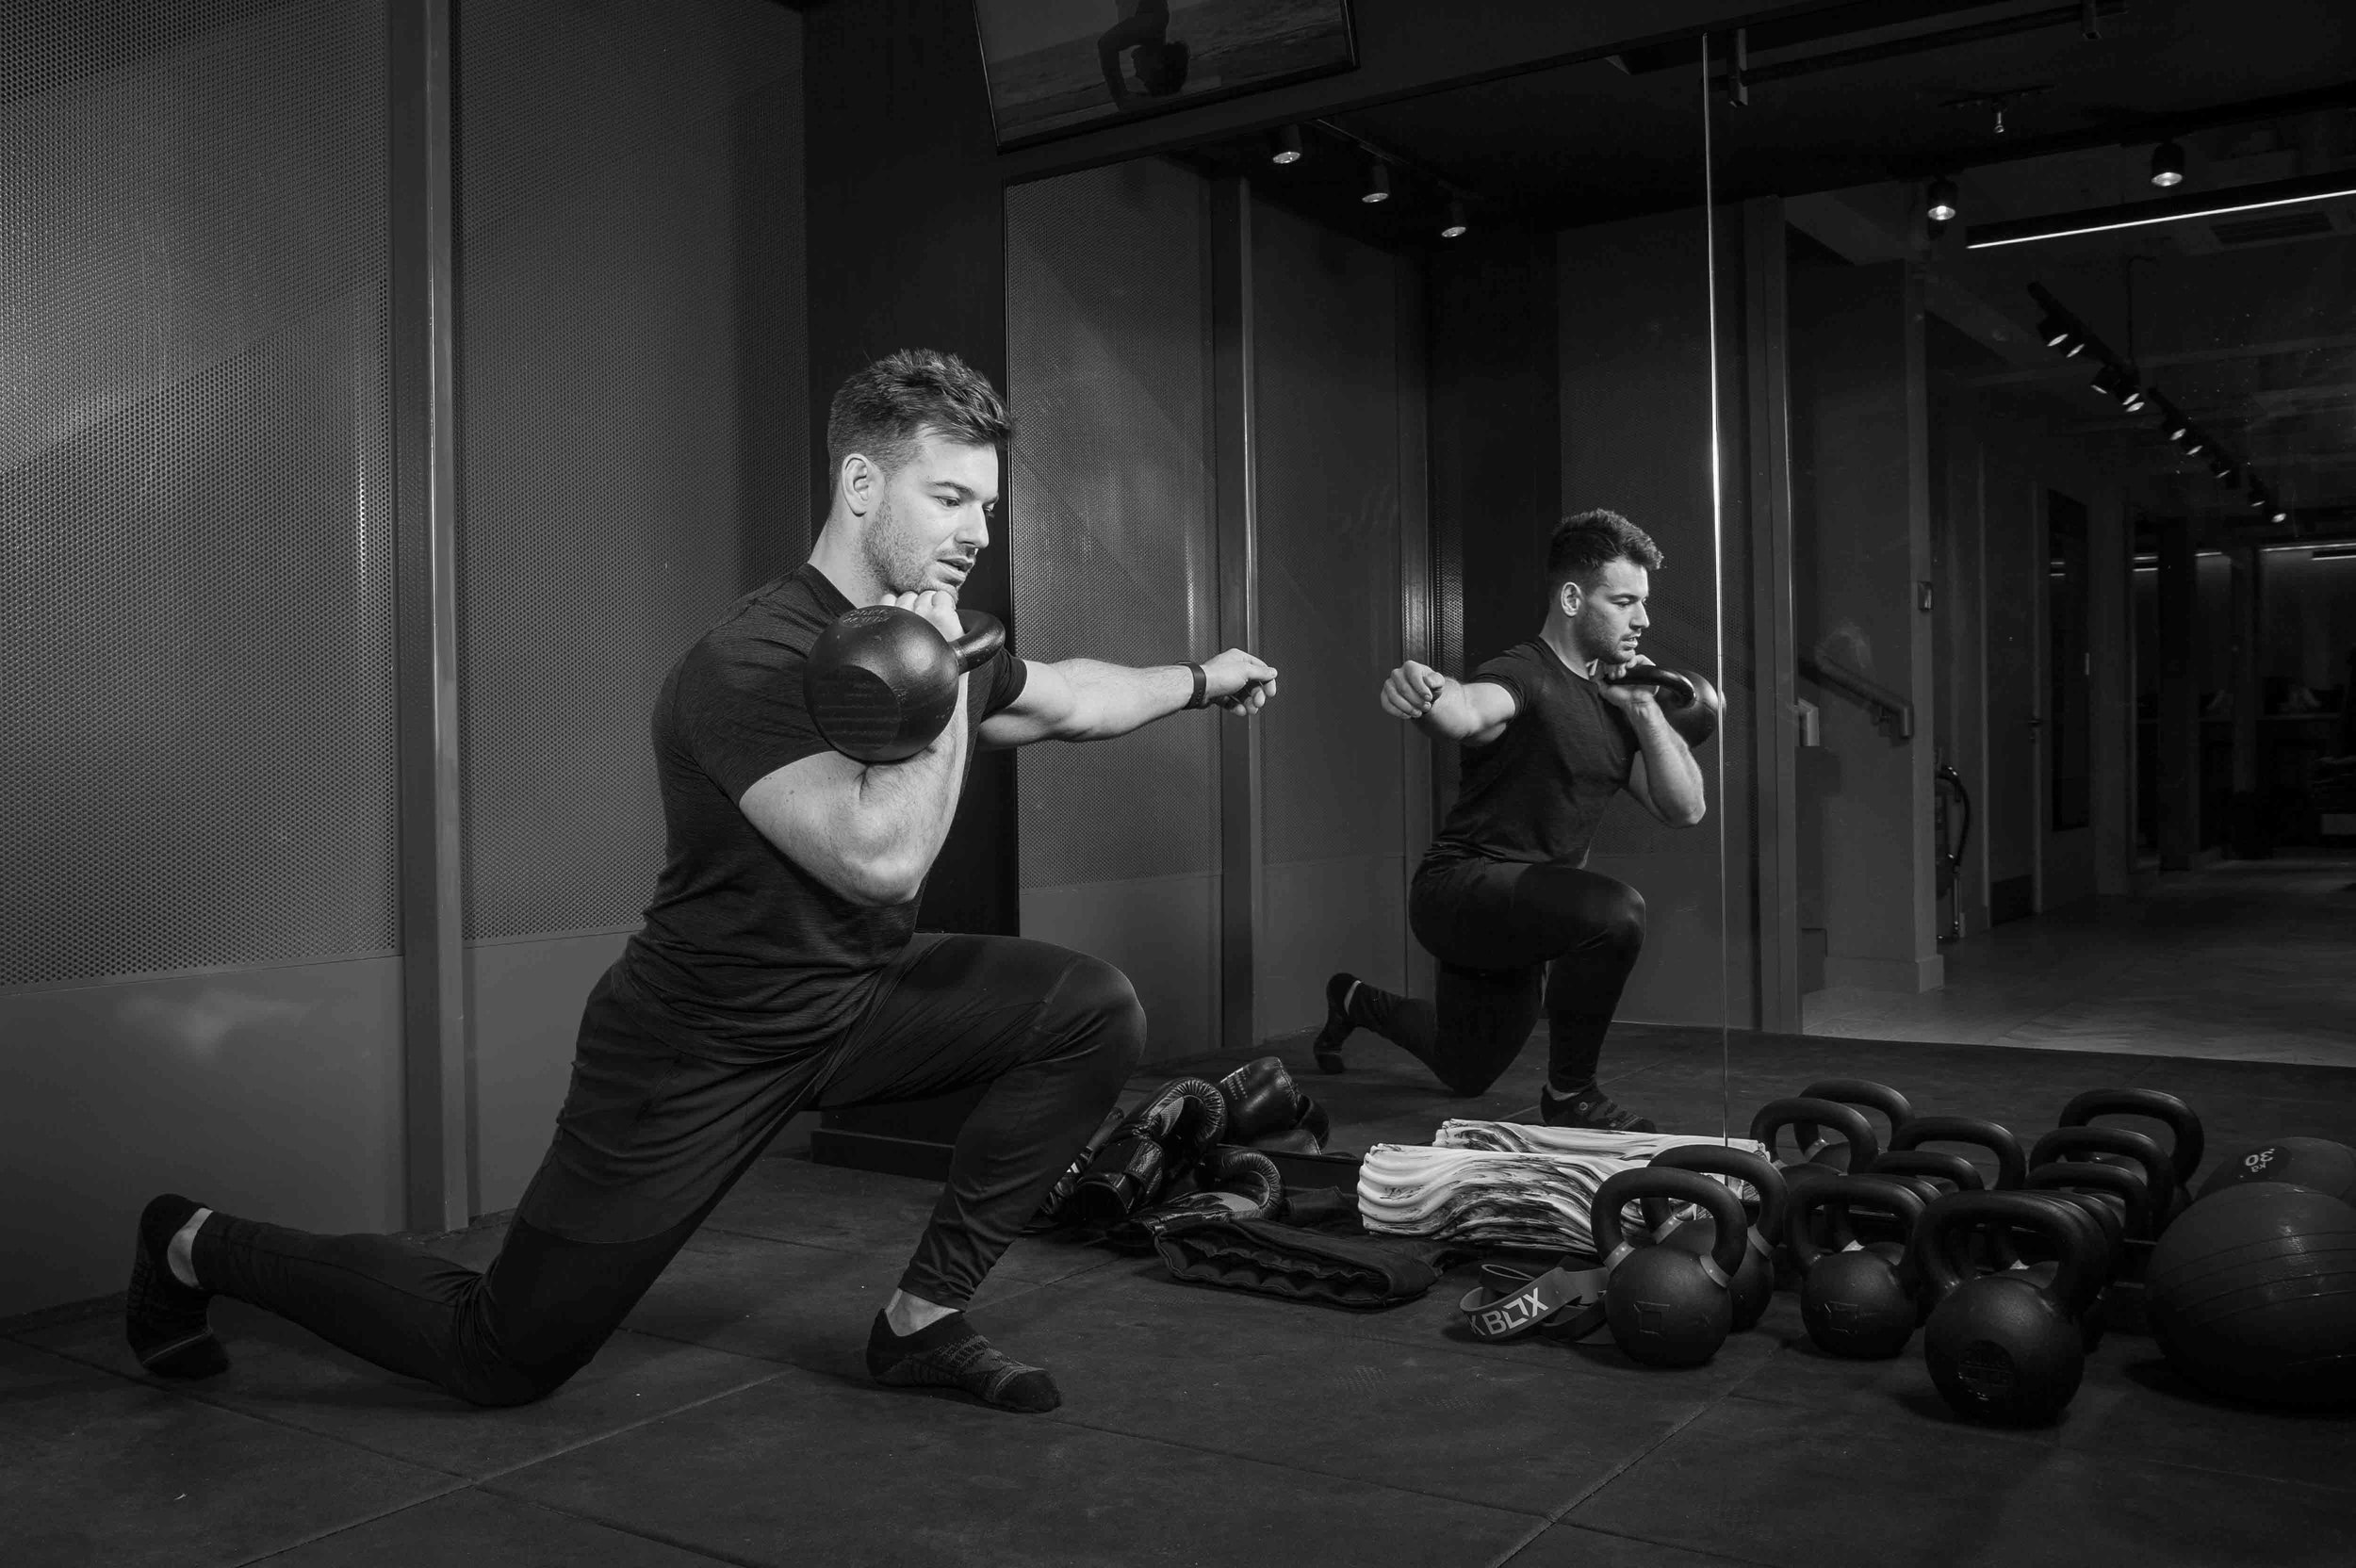 Based in South West London, I offer 1:1, couples OR group Personal Training sessions, tailored around the specific needs of each client. IF YOU ARE WITHIN THE GREATER LONDON AREA PLEASE DON'T HESITATE TO GET IN TOUCH - LOCATION